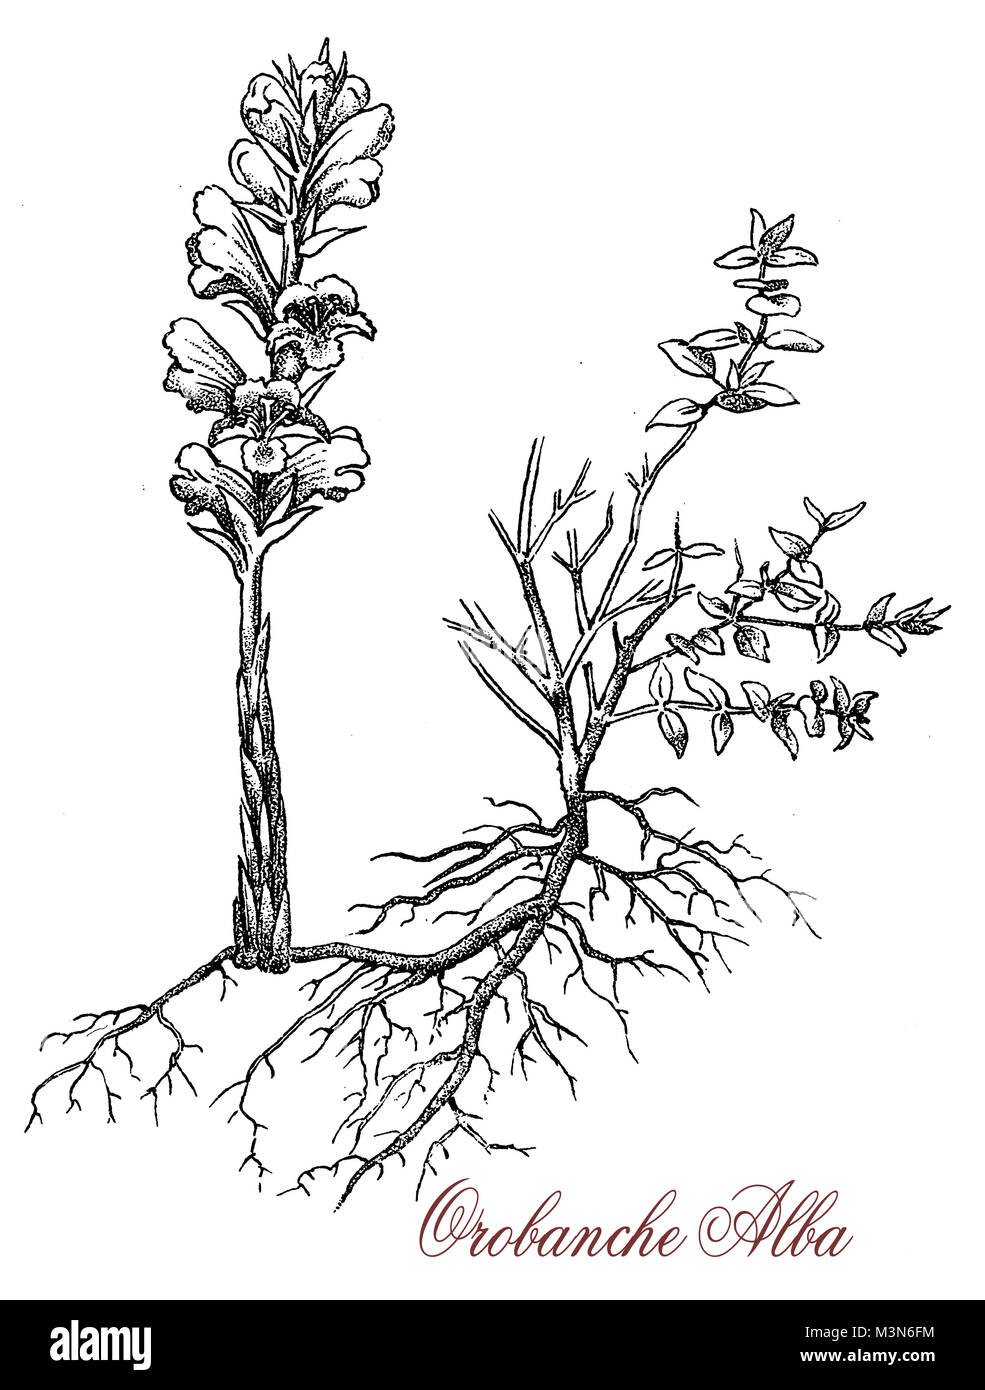 vintage engraving of orobanche alba or Thyme broomrape, parasitic plant with stems completely lacking chlorophyll, - Stock Image